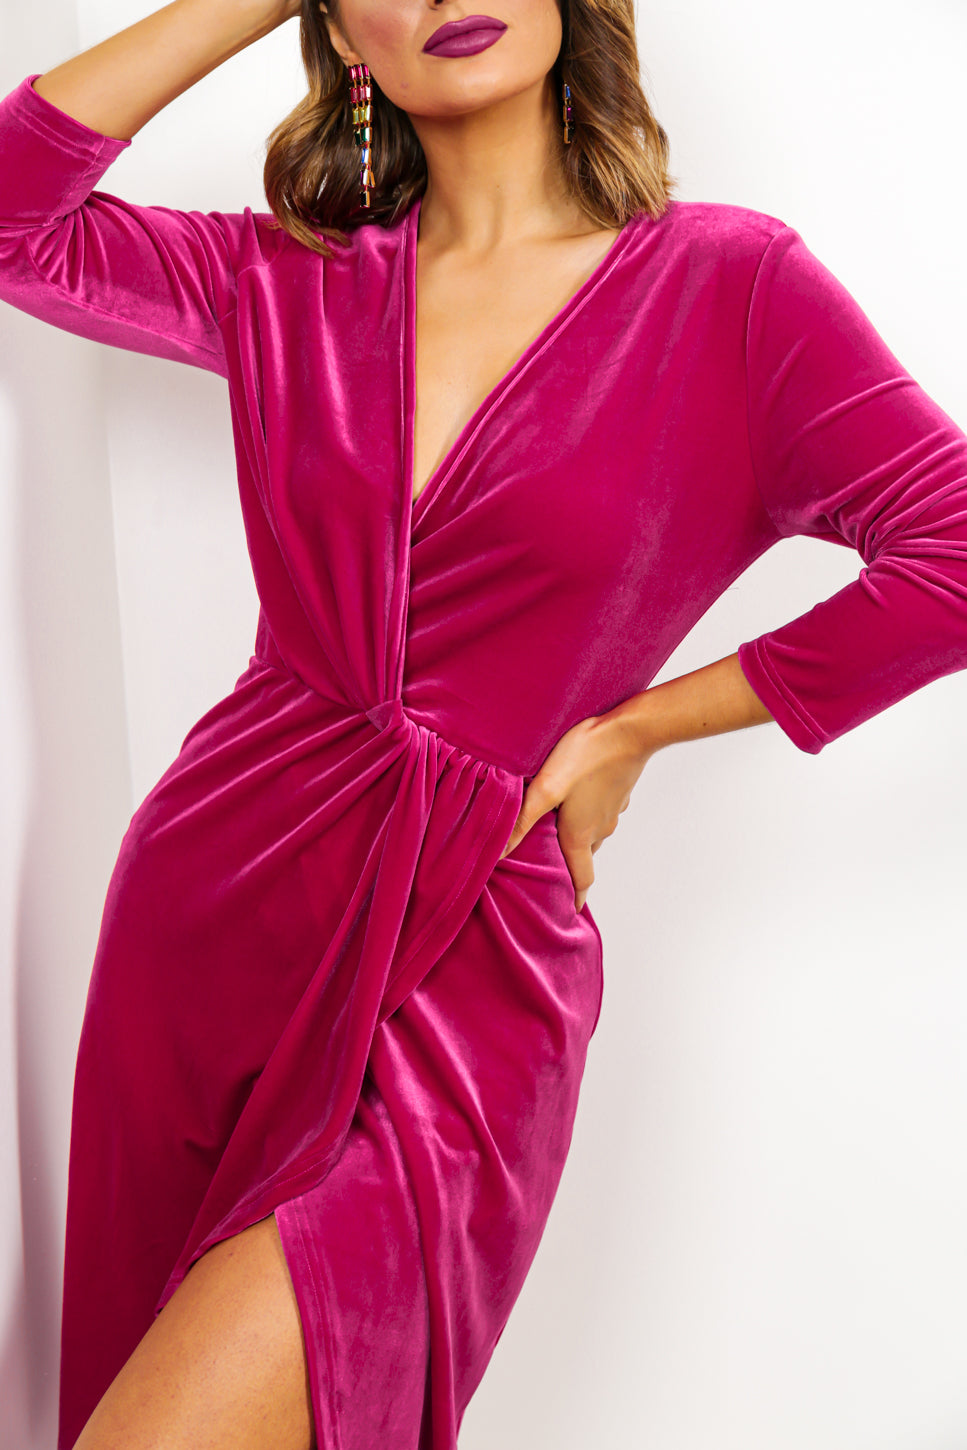 Love At First Sight - Midi Dress In HOTPINK/VELVET